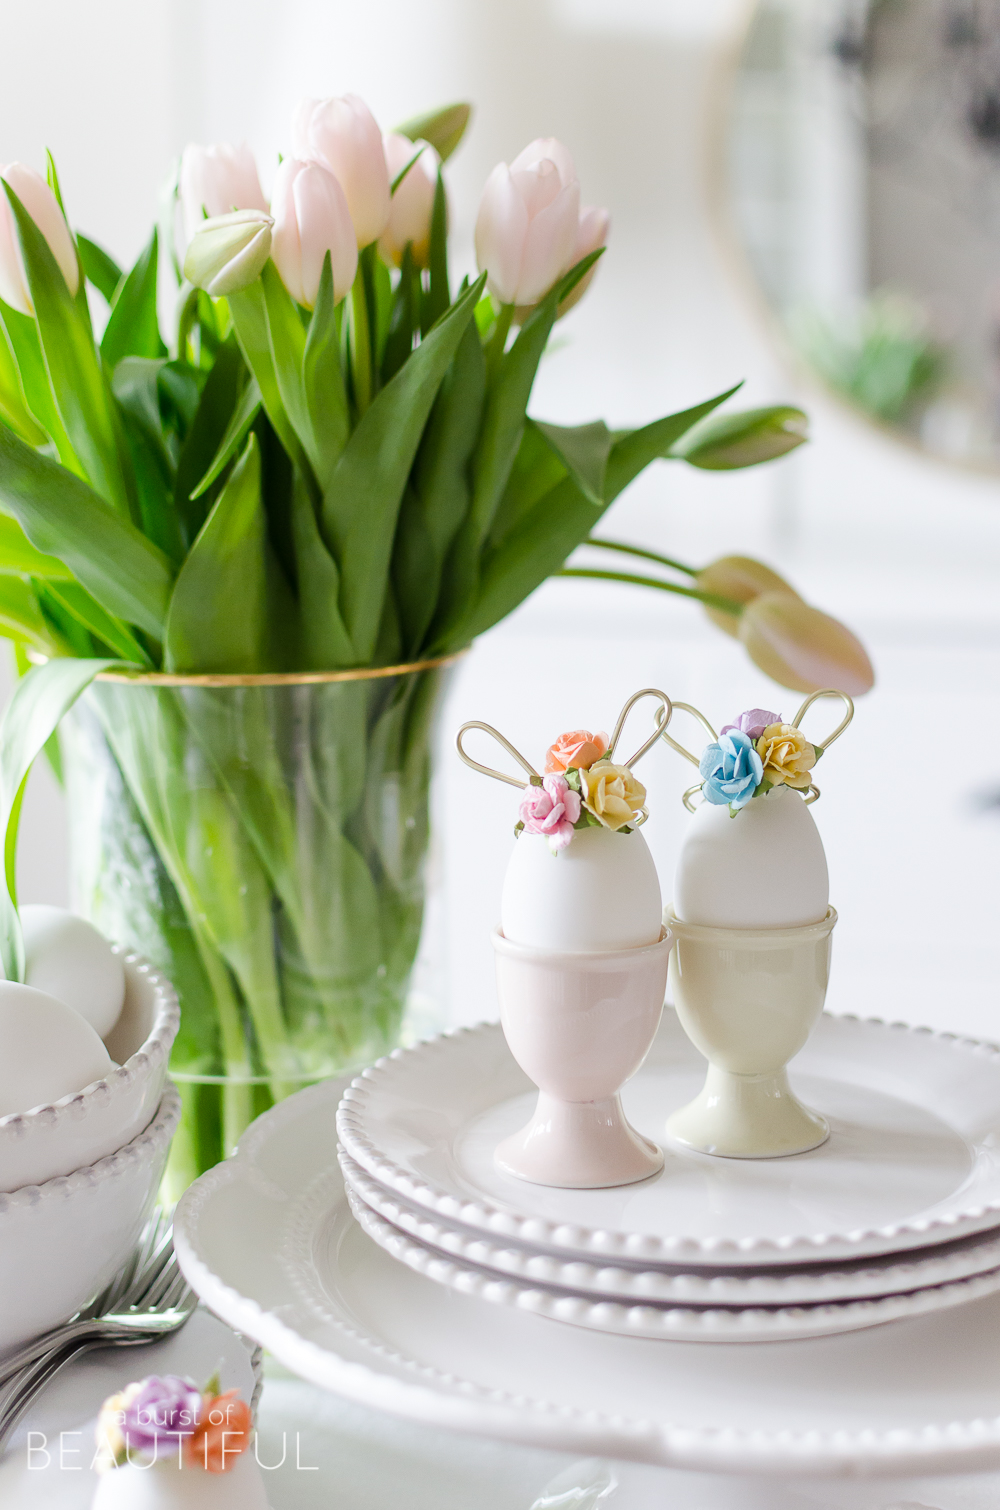 Easter Egg Decorating Idea | Decorate your Easter eggs this holiday with these miniature DIY gold wire bunny ears and floral crowns for a sweet and whimsical touch.